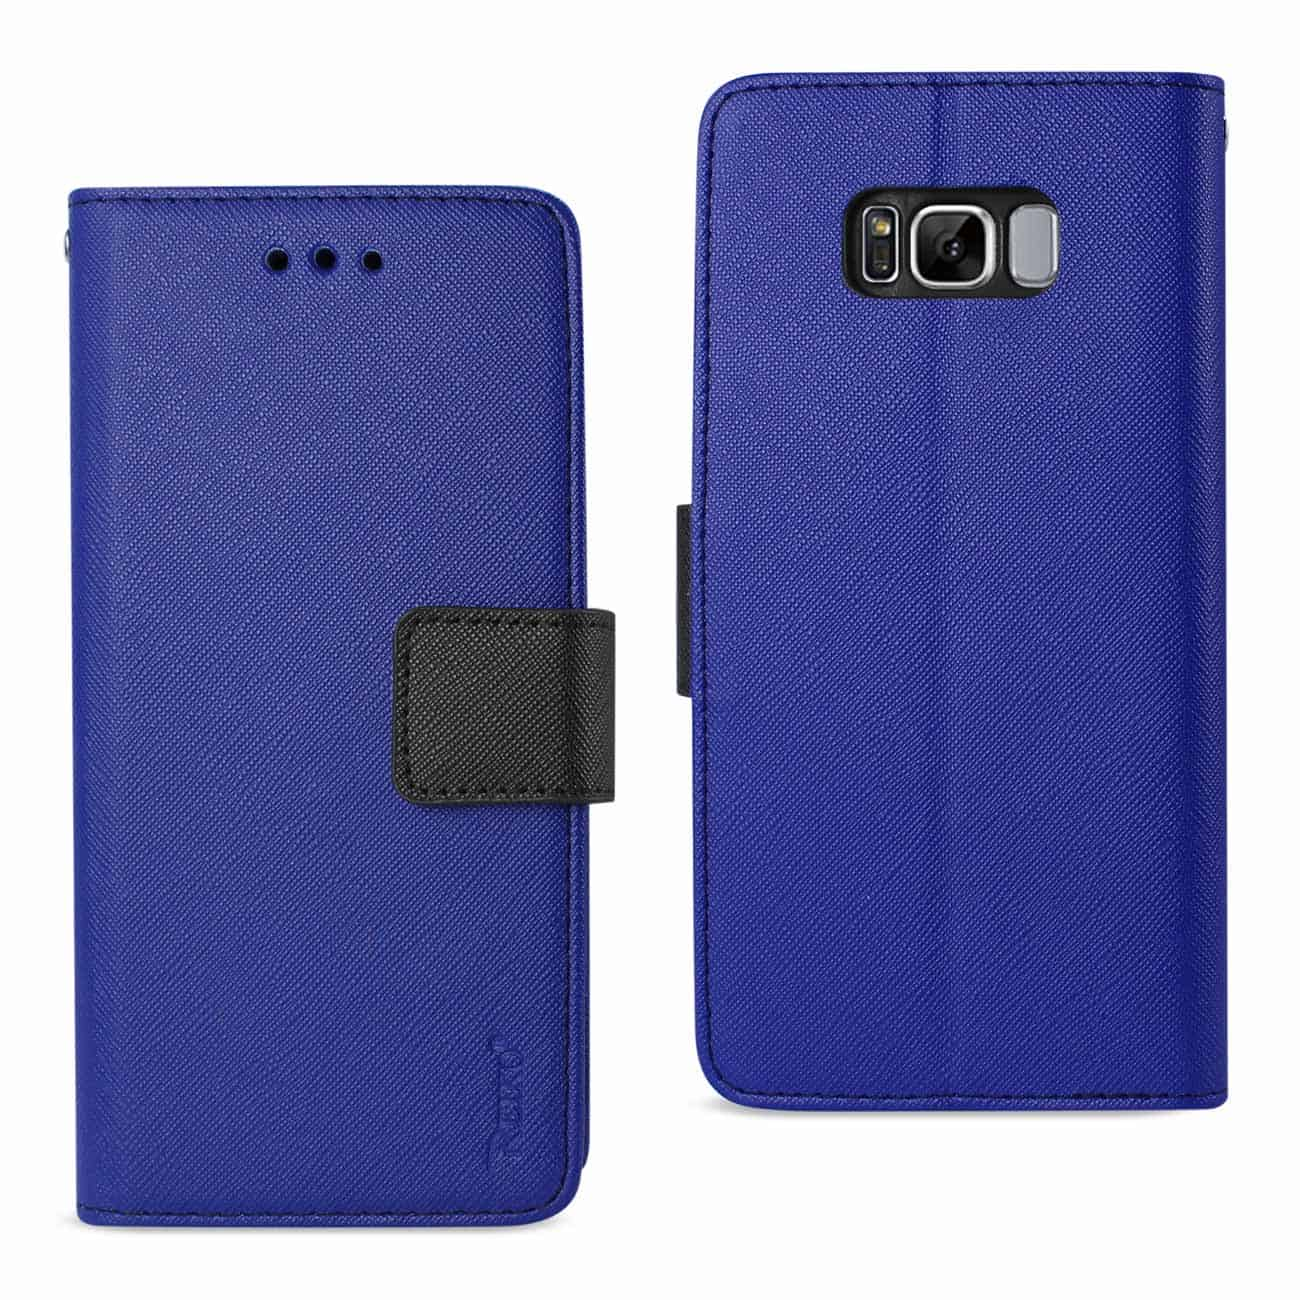 SAMSUNG GALAXY S8 3-IN-1 WALLET CASE IN NAVY